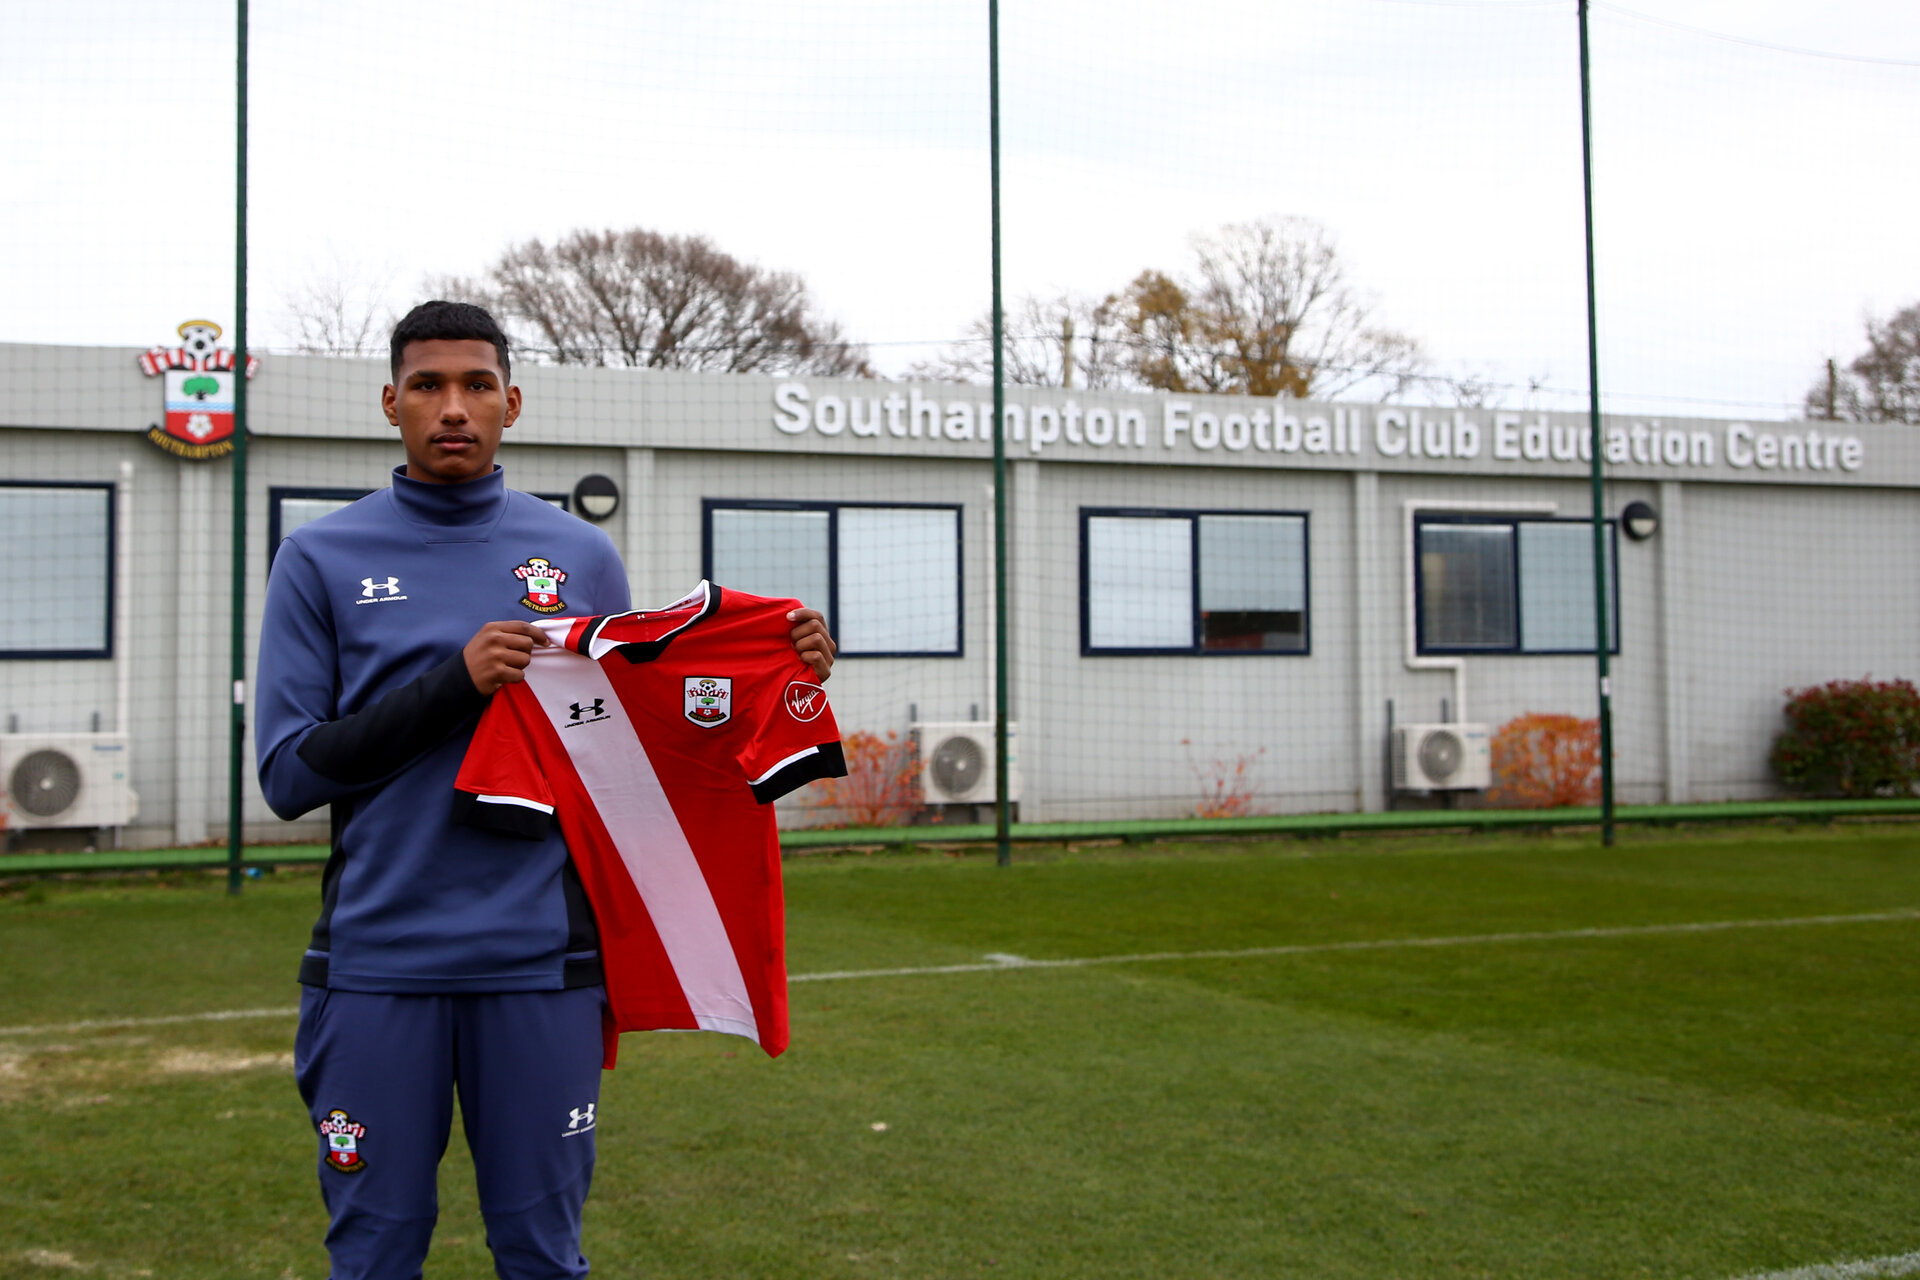 SOUTHAMPTON, ENGLAND - DECEMBER 09: Jeremi Rodriguez signing his first professional contract photographed at Staplewood Training Ground on December 09, 2020 in Southampton, England. (Photo by Isabelle Field/Southampton FC via Getty Images)